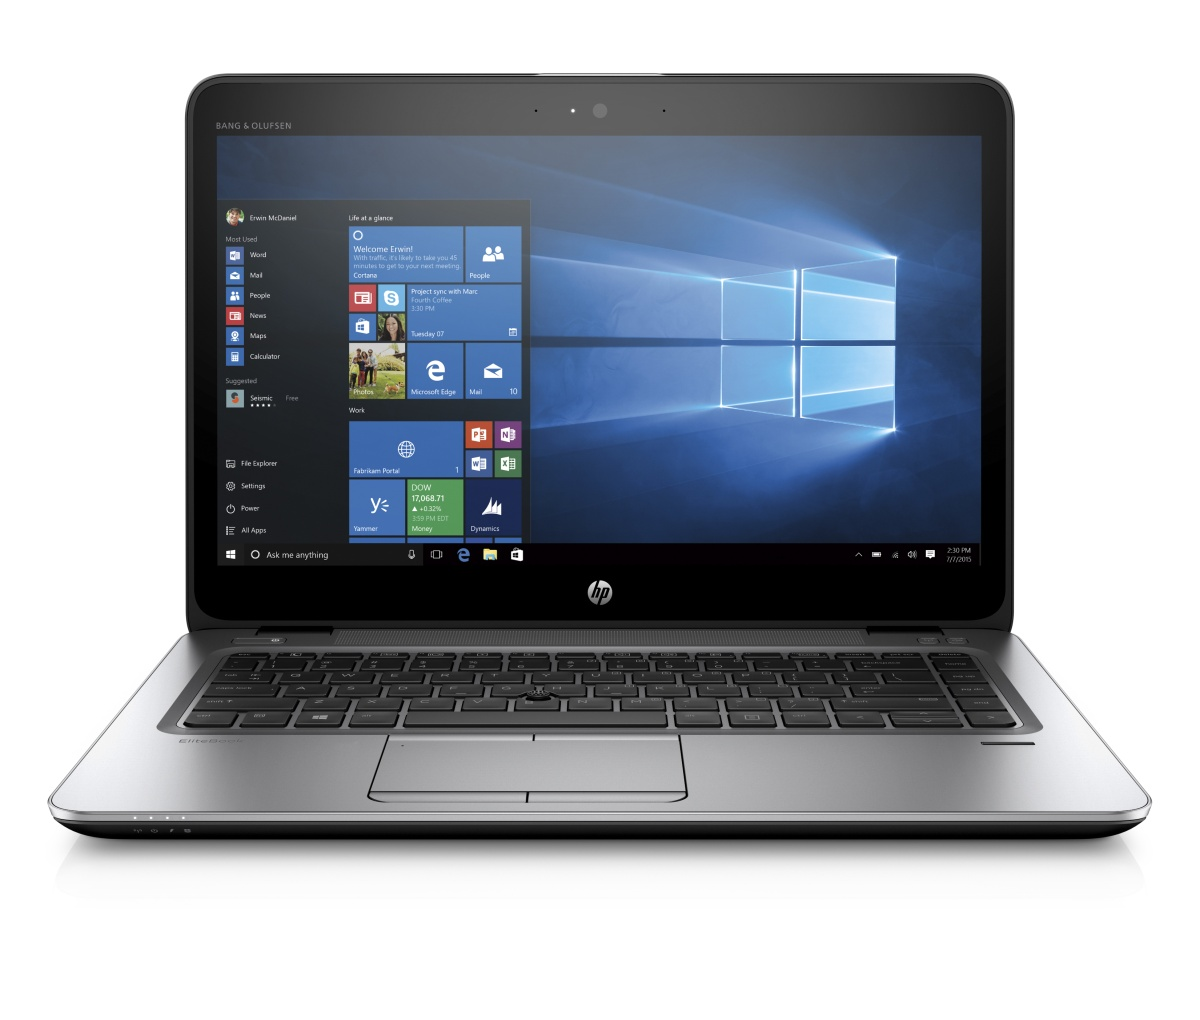 HP EliteBook 840 G3 14'' FHD /i7-6500U/8GB/512SSD/WIFI/BT/4G/MCR/FPR/3RServis/7+